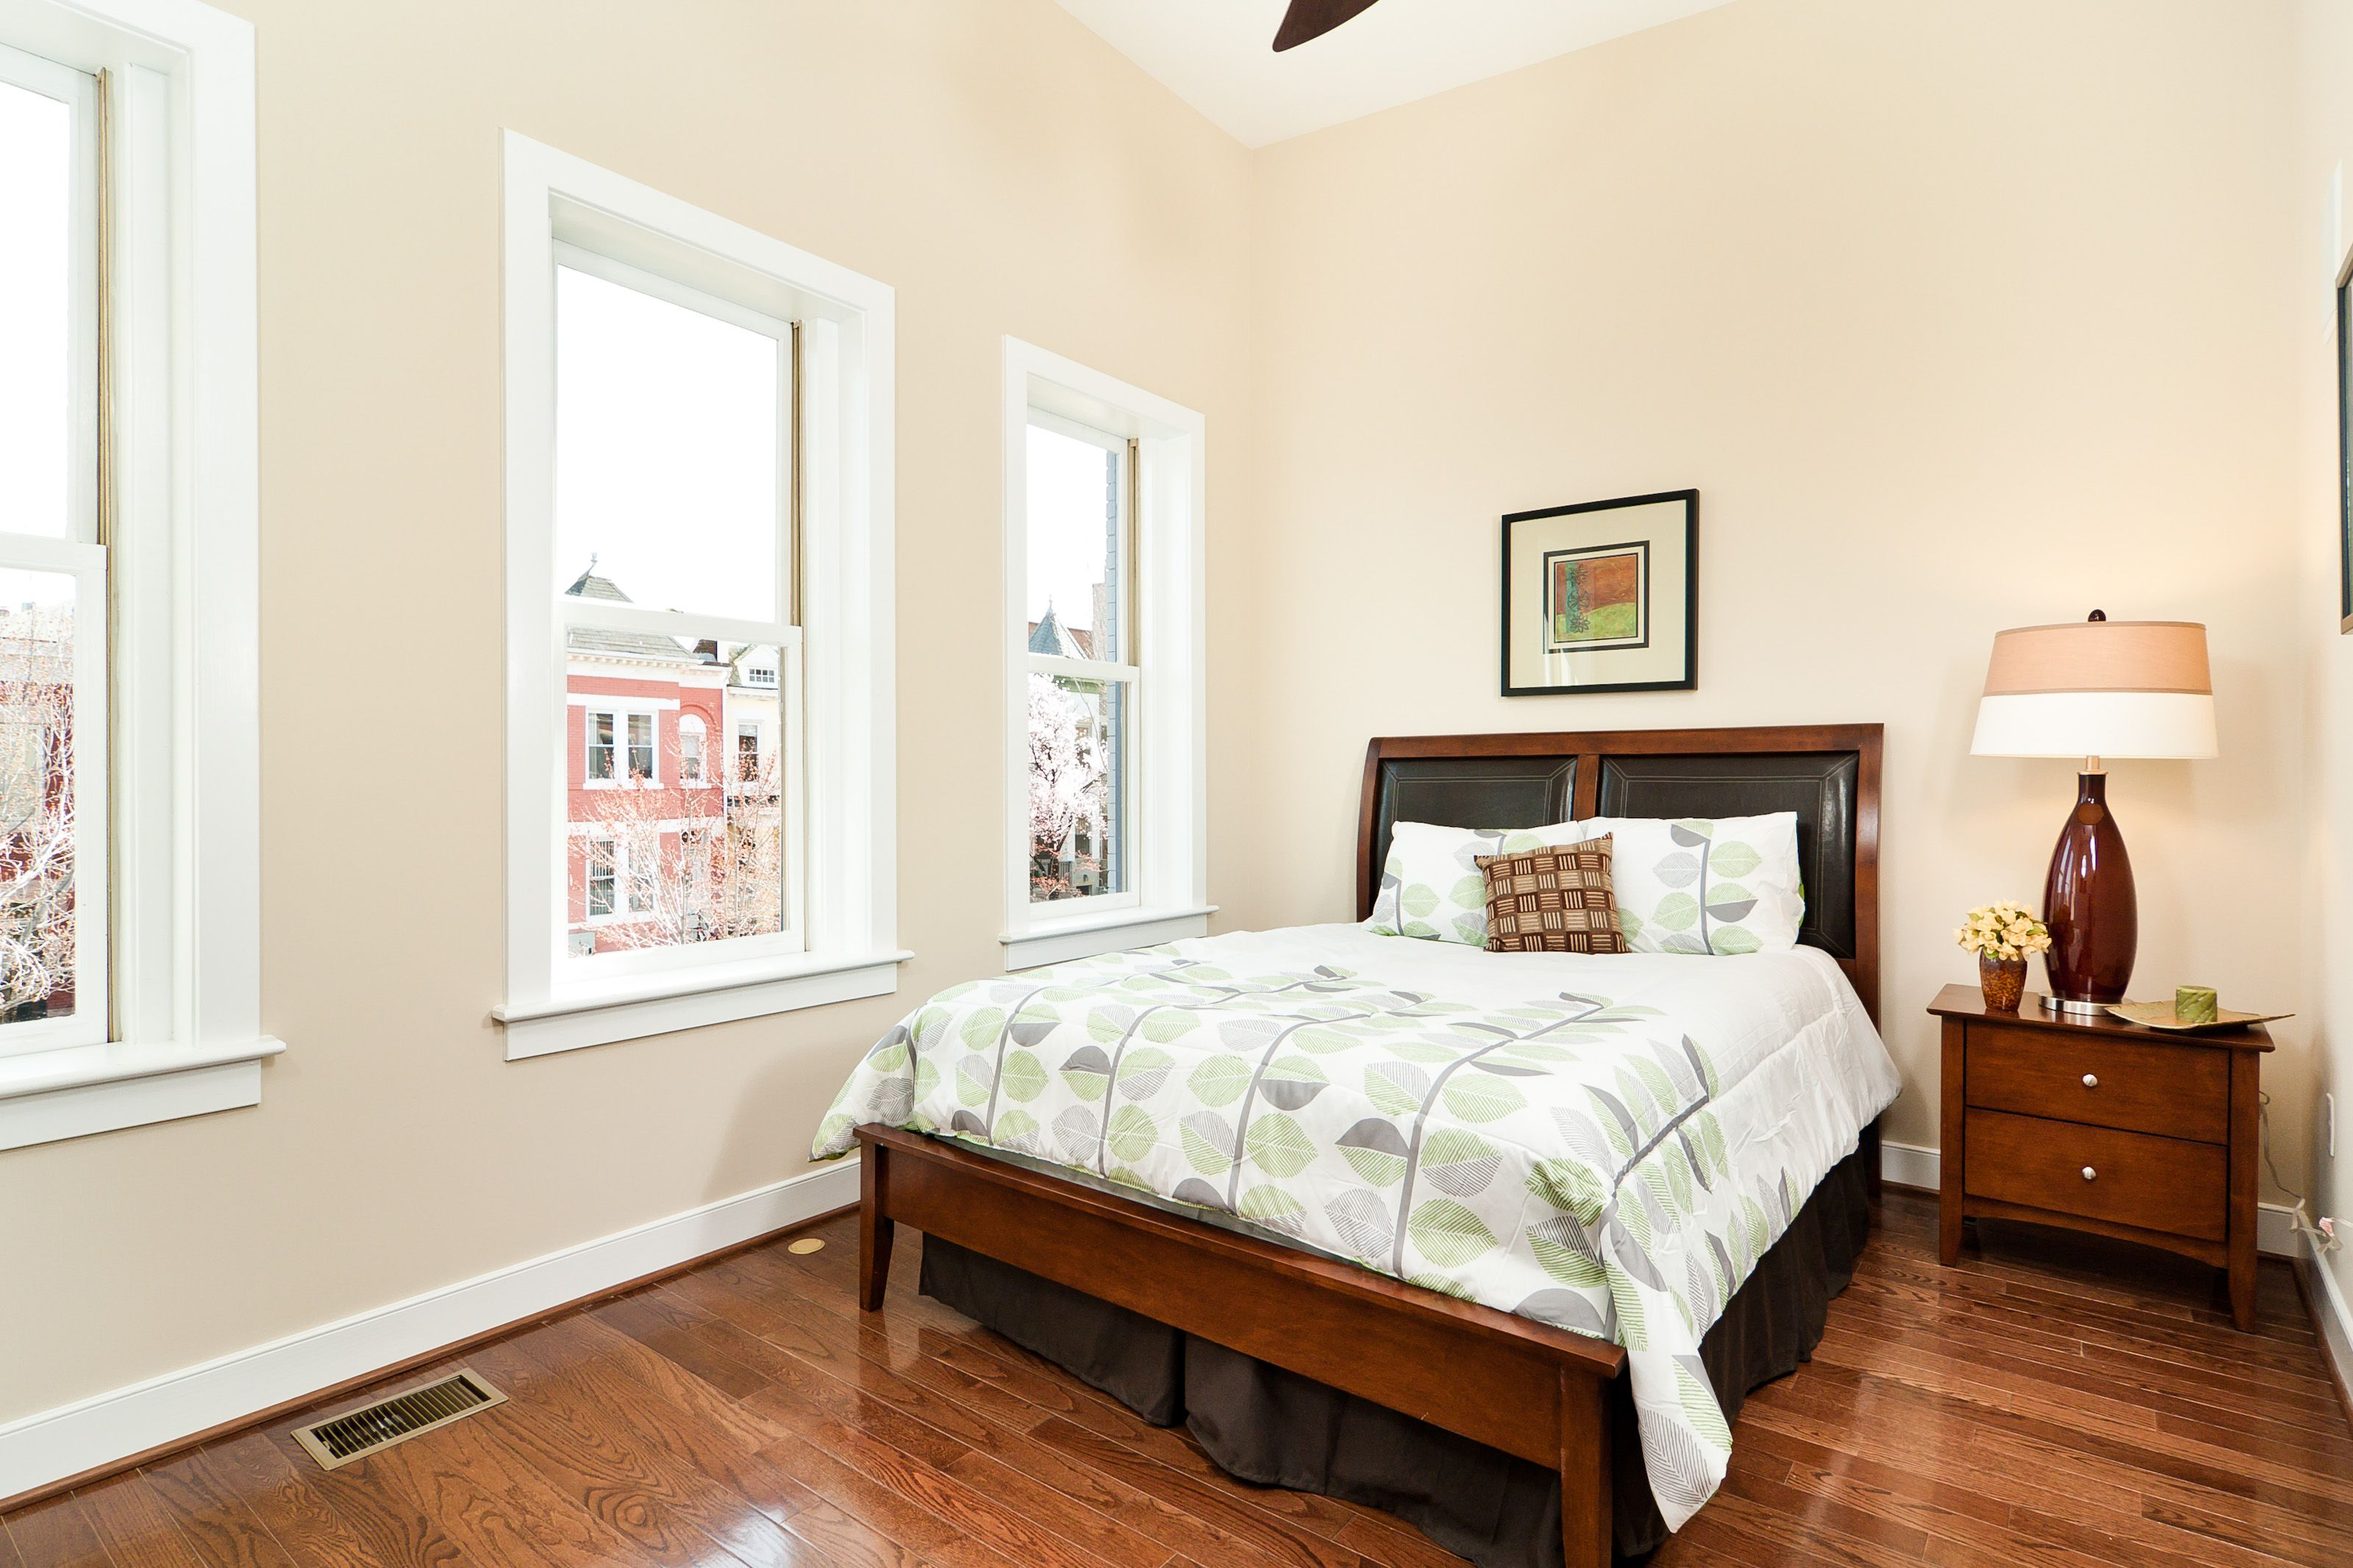 Staging Bedrooms Home decor, Stage for sale, Home